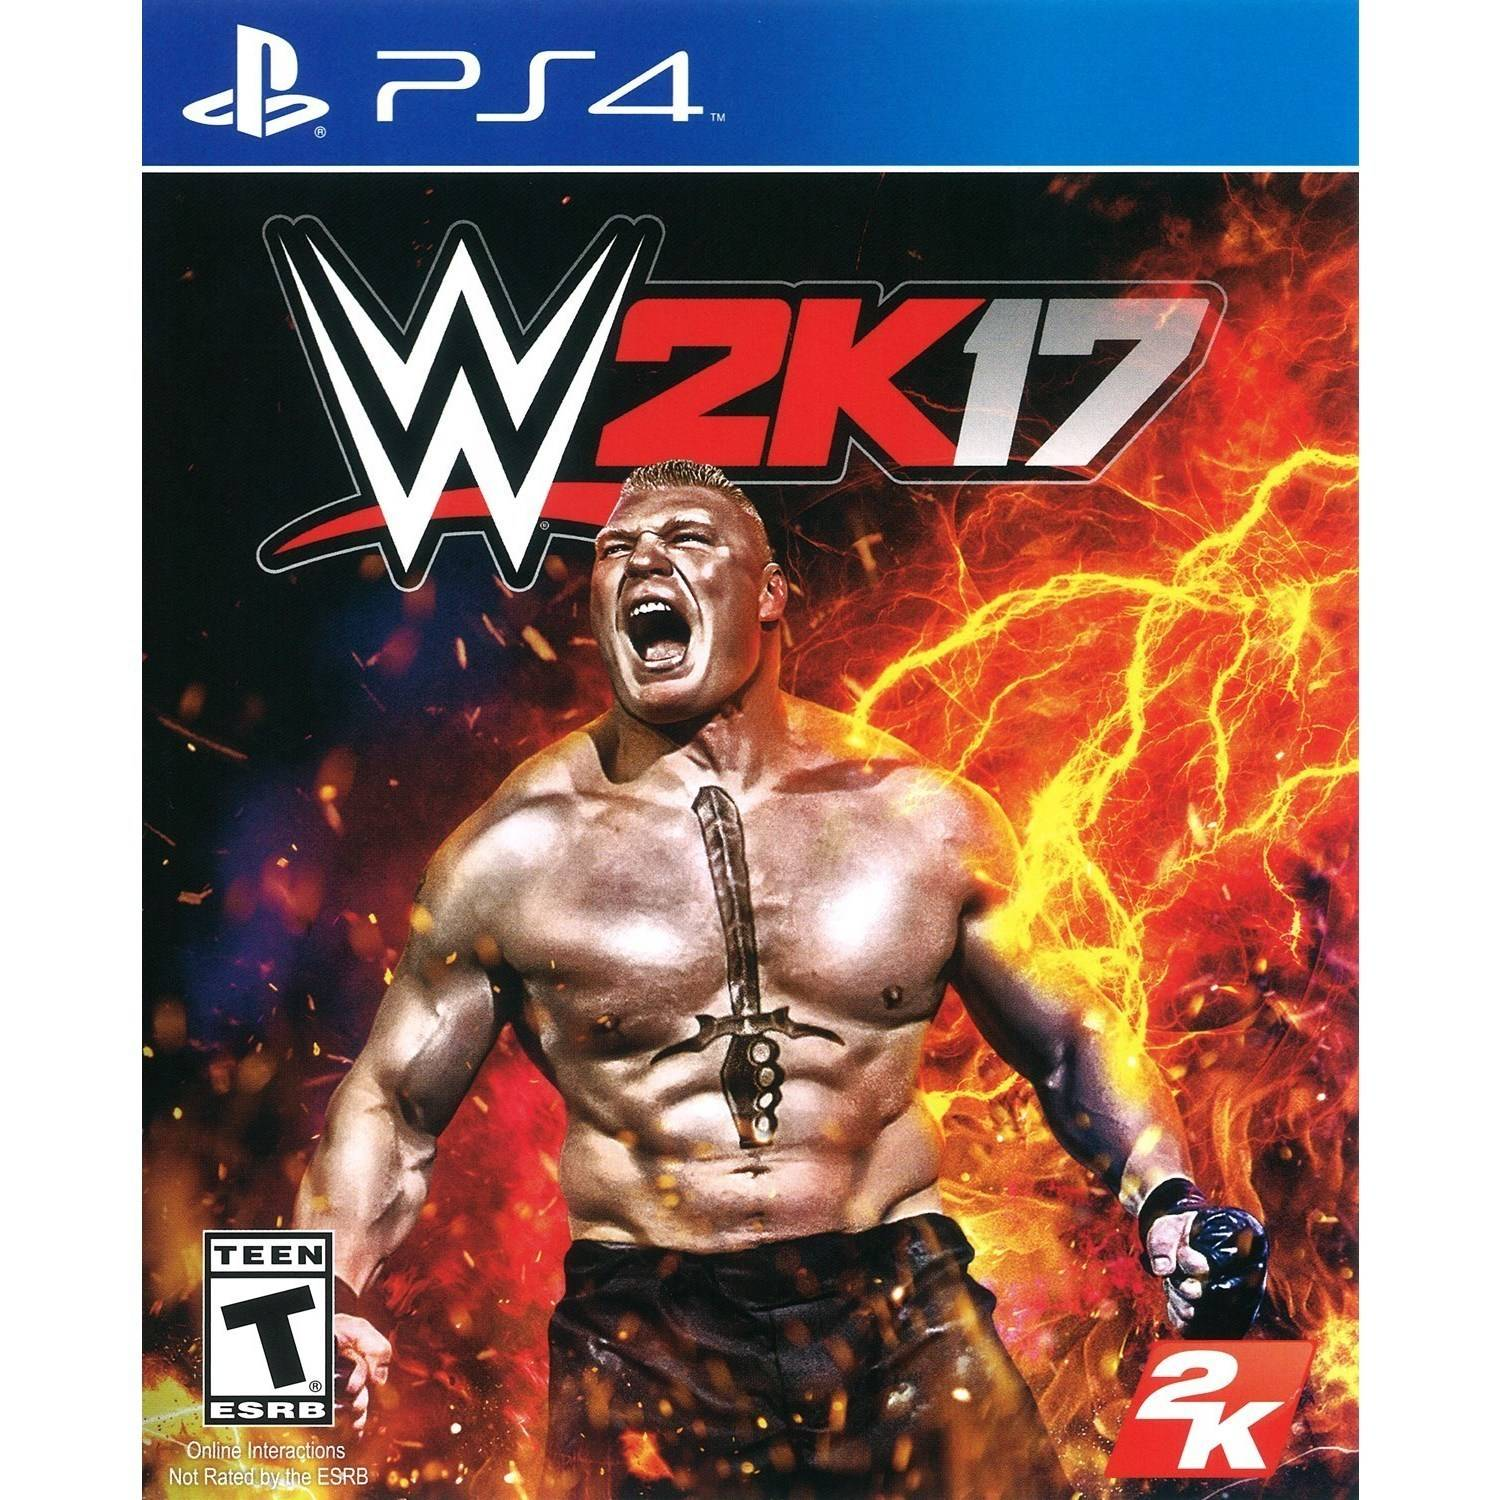 WWE 2K17 (Playstation 4) by TAKE 2 INTERACTIVE